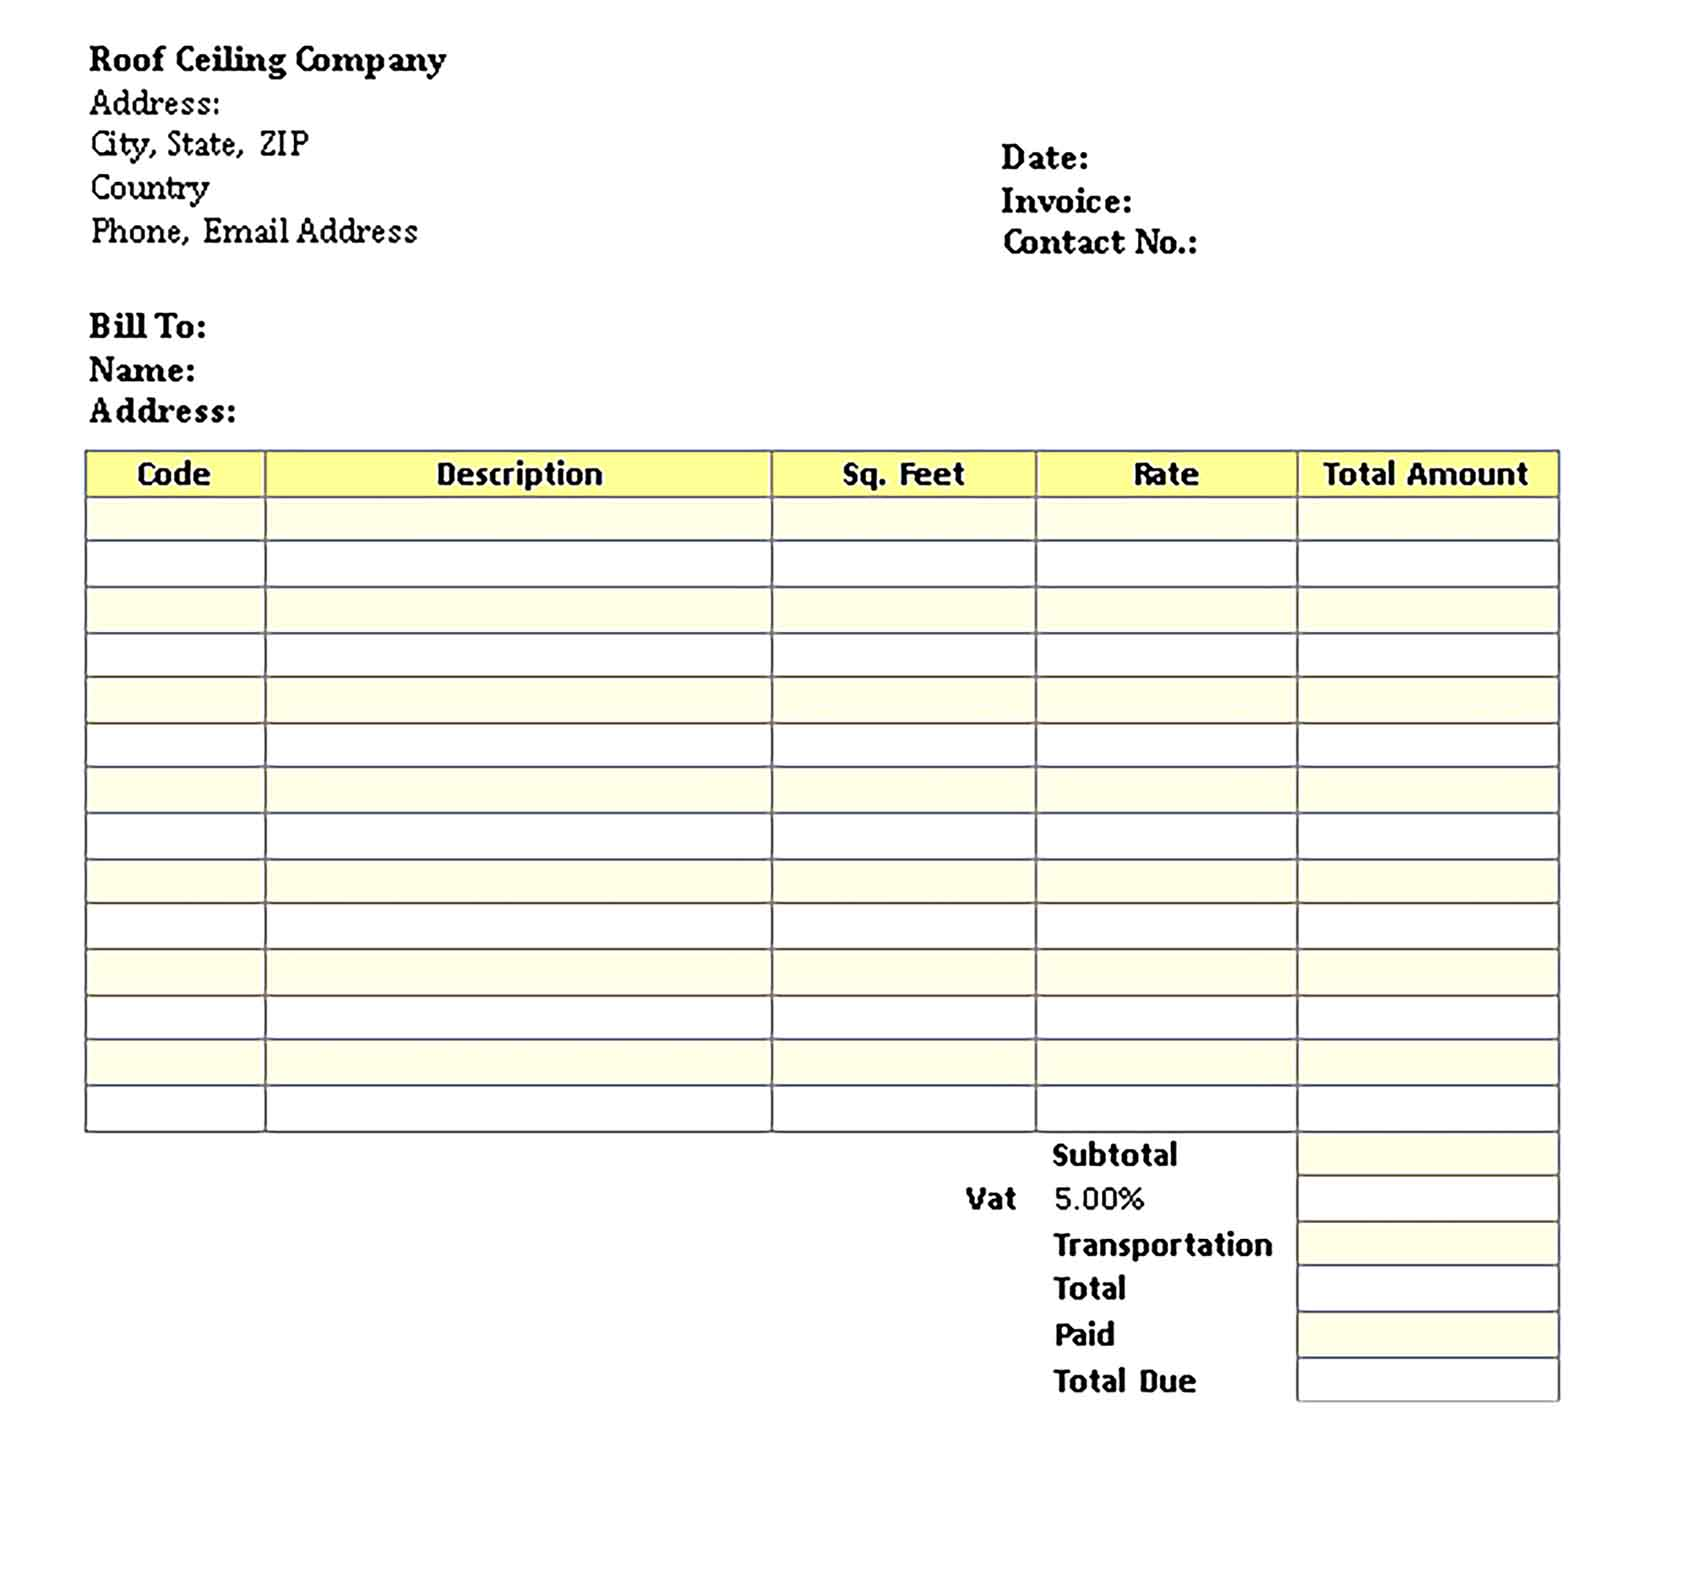 Sample Templates Roof Ceiling Invoice